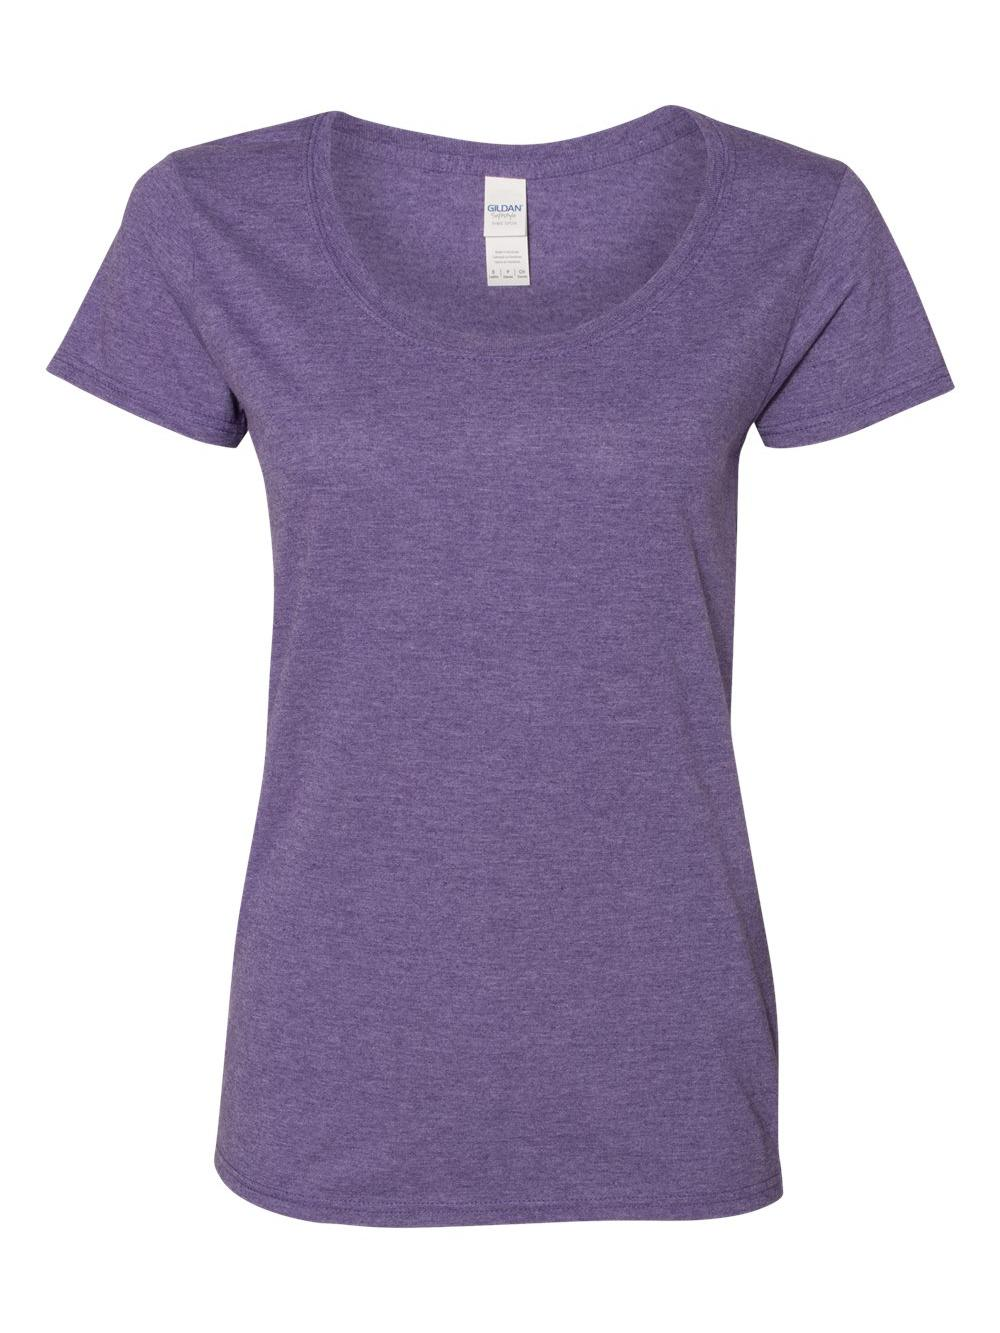 Gildan-Softstyle-Women-039-s-Deep-Scoopneck-T-Shirt-64550L thumbnail 24